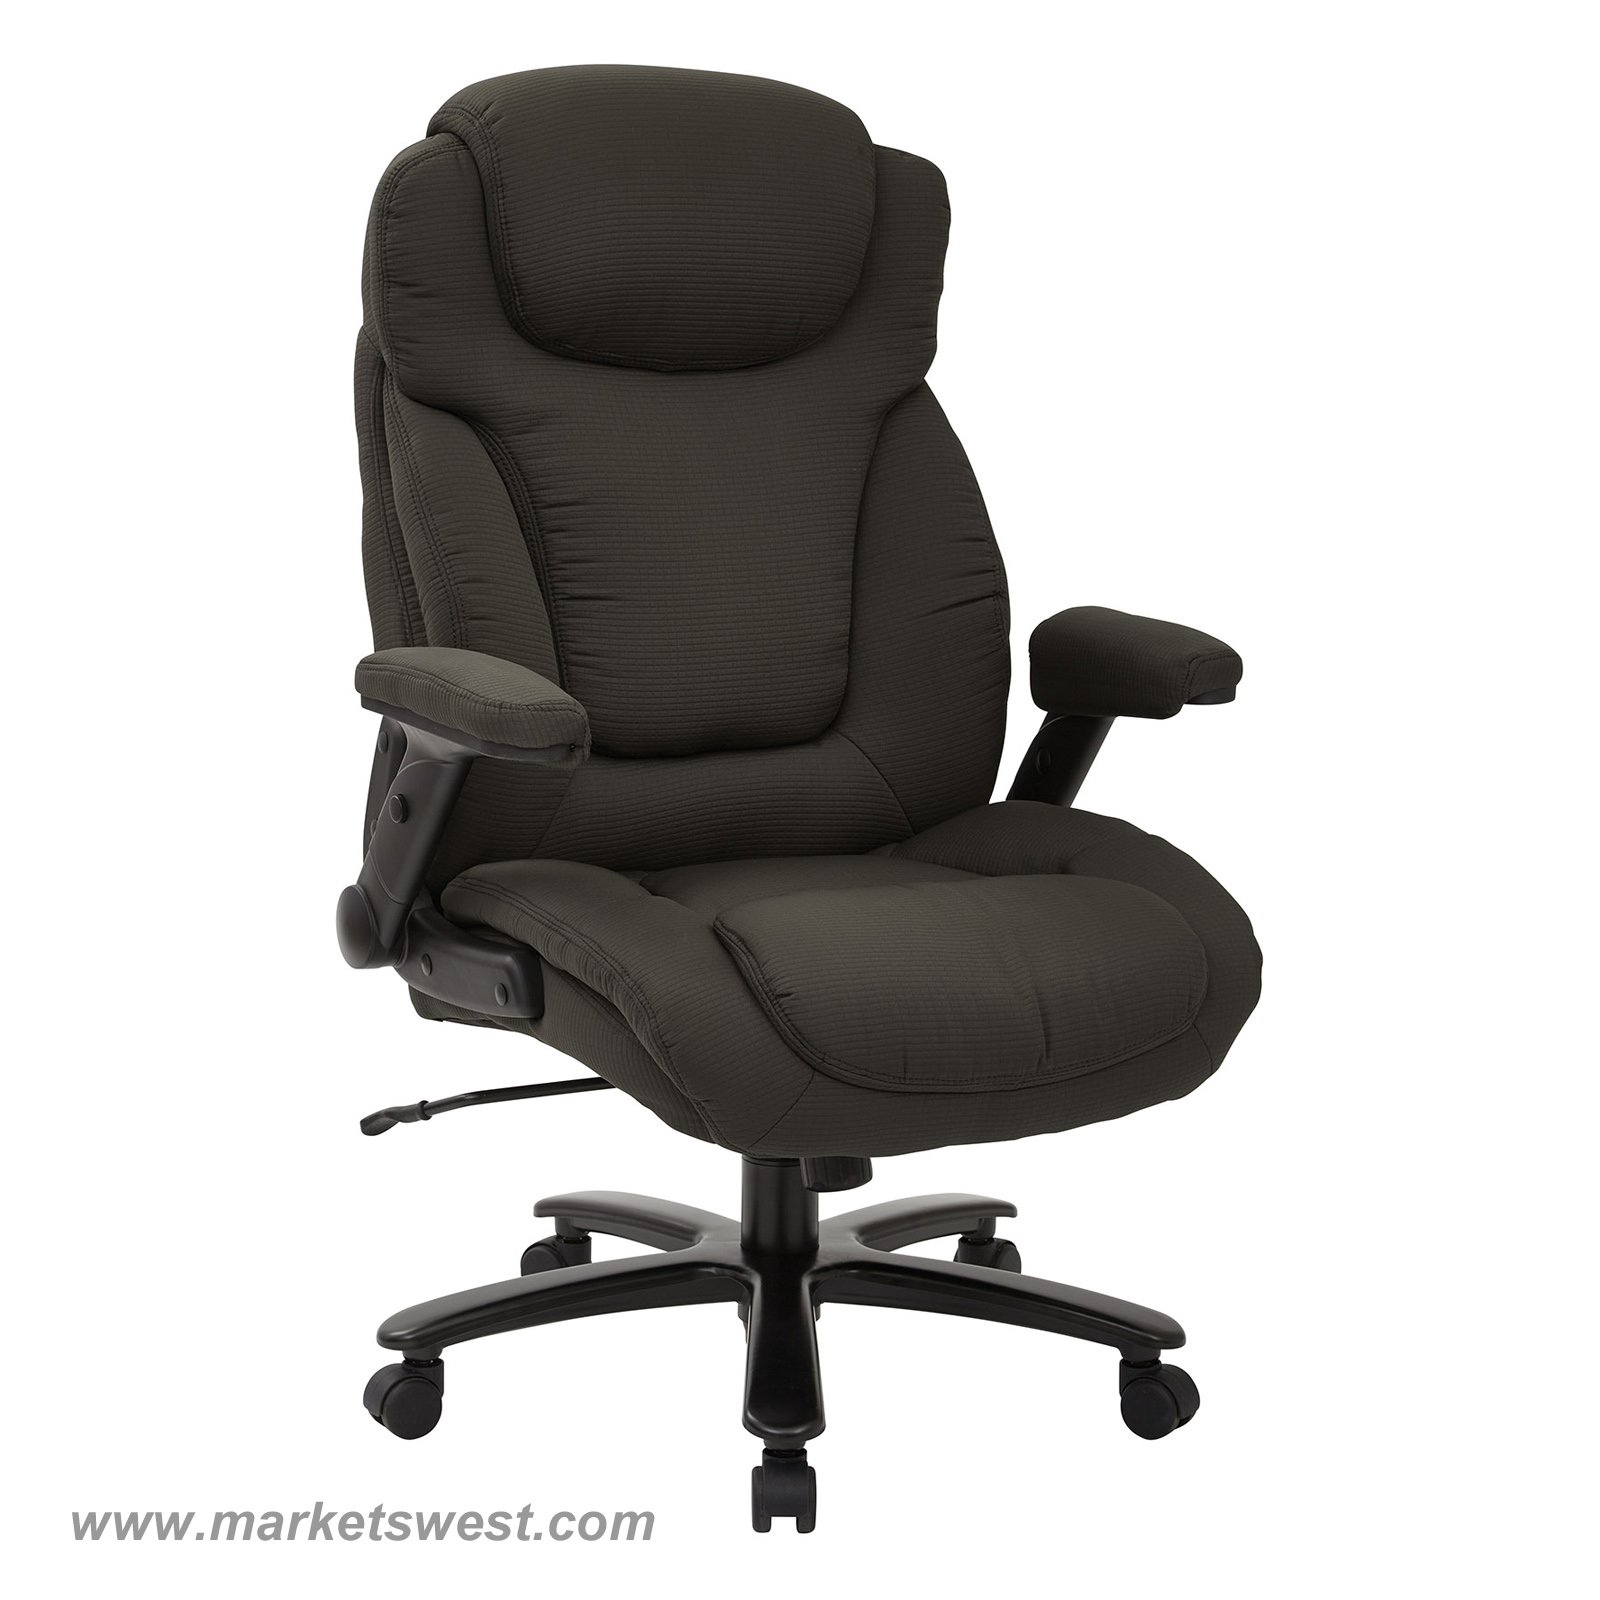 Executive Chairs Big And Tall High Back Charcoal Fabric Executive Chair With